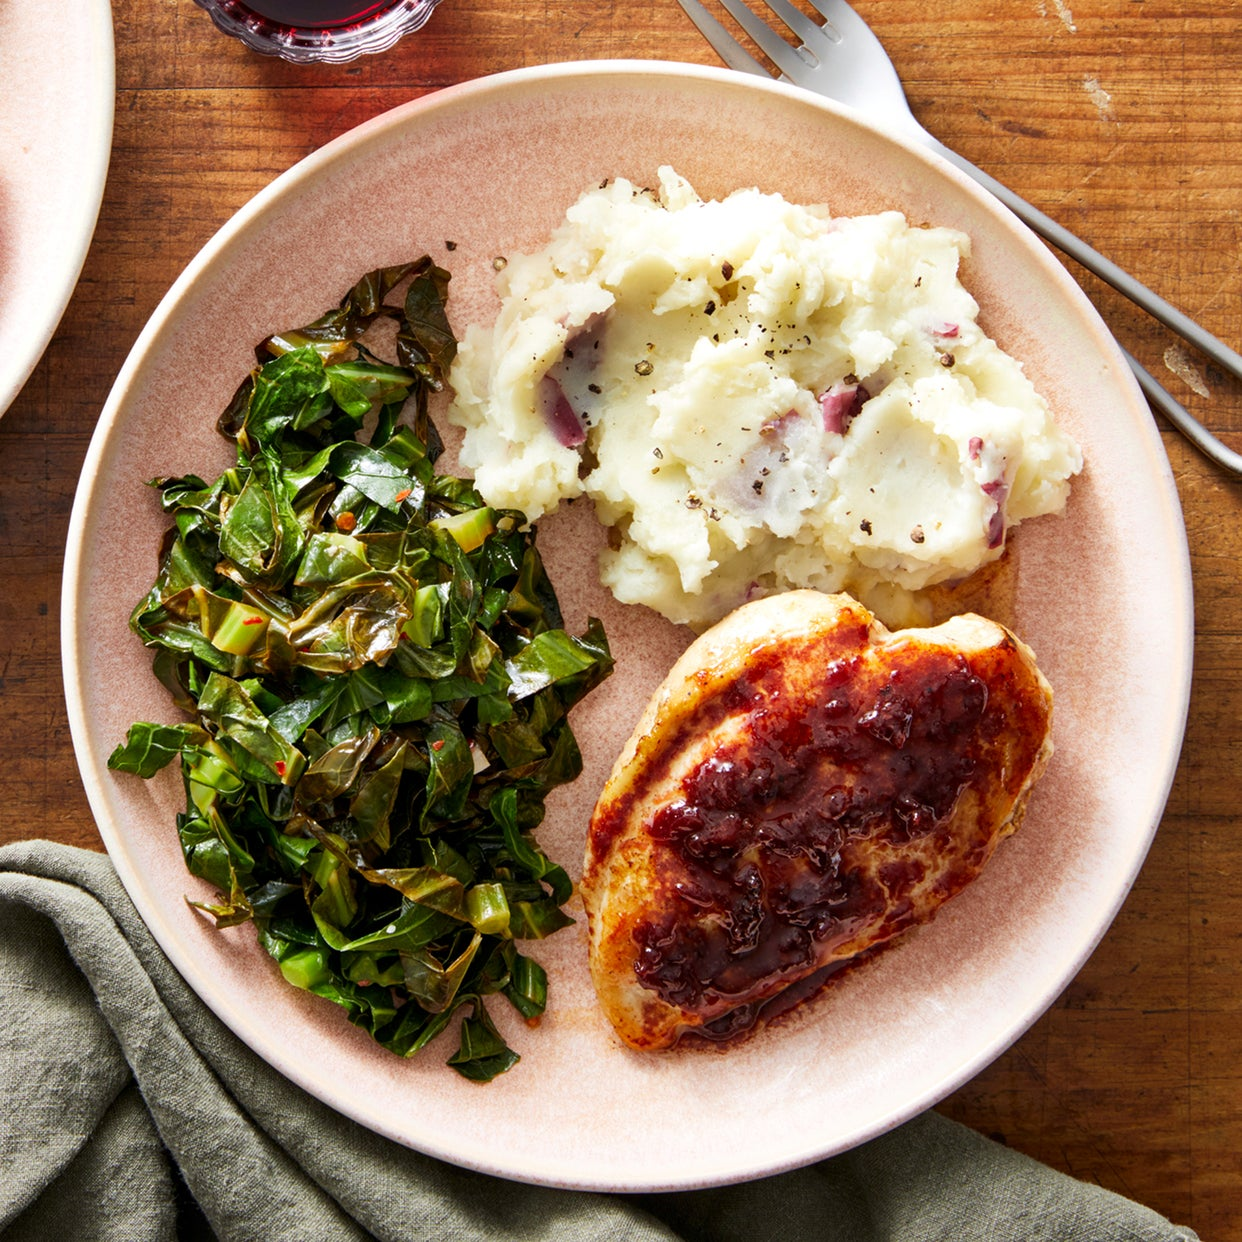 Cherry-Glazed Chicken with Garlic Mashed Potatoes & Braised Collard Greens